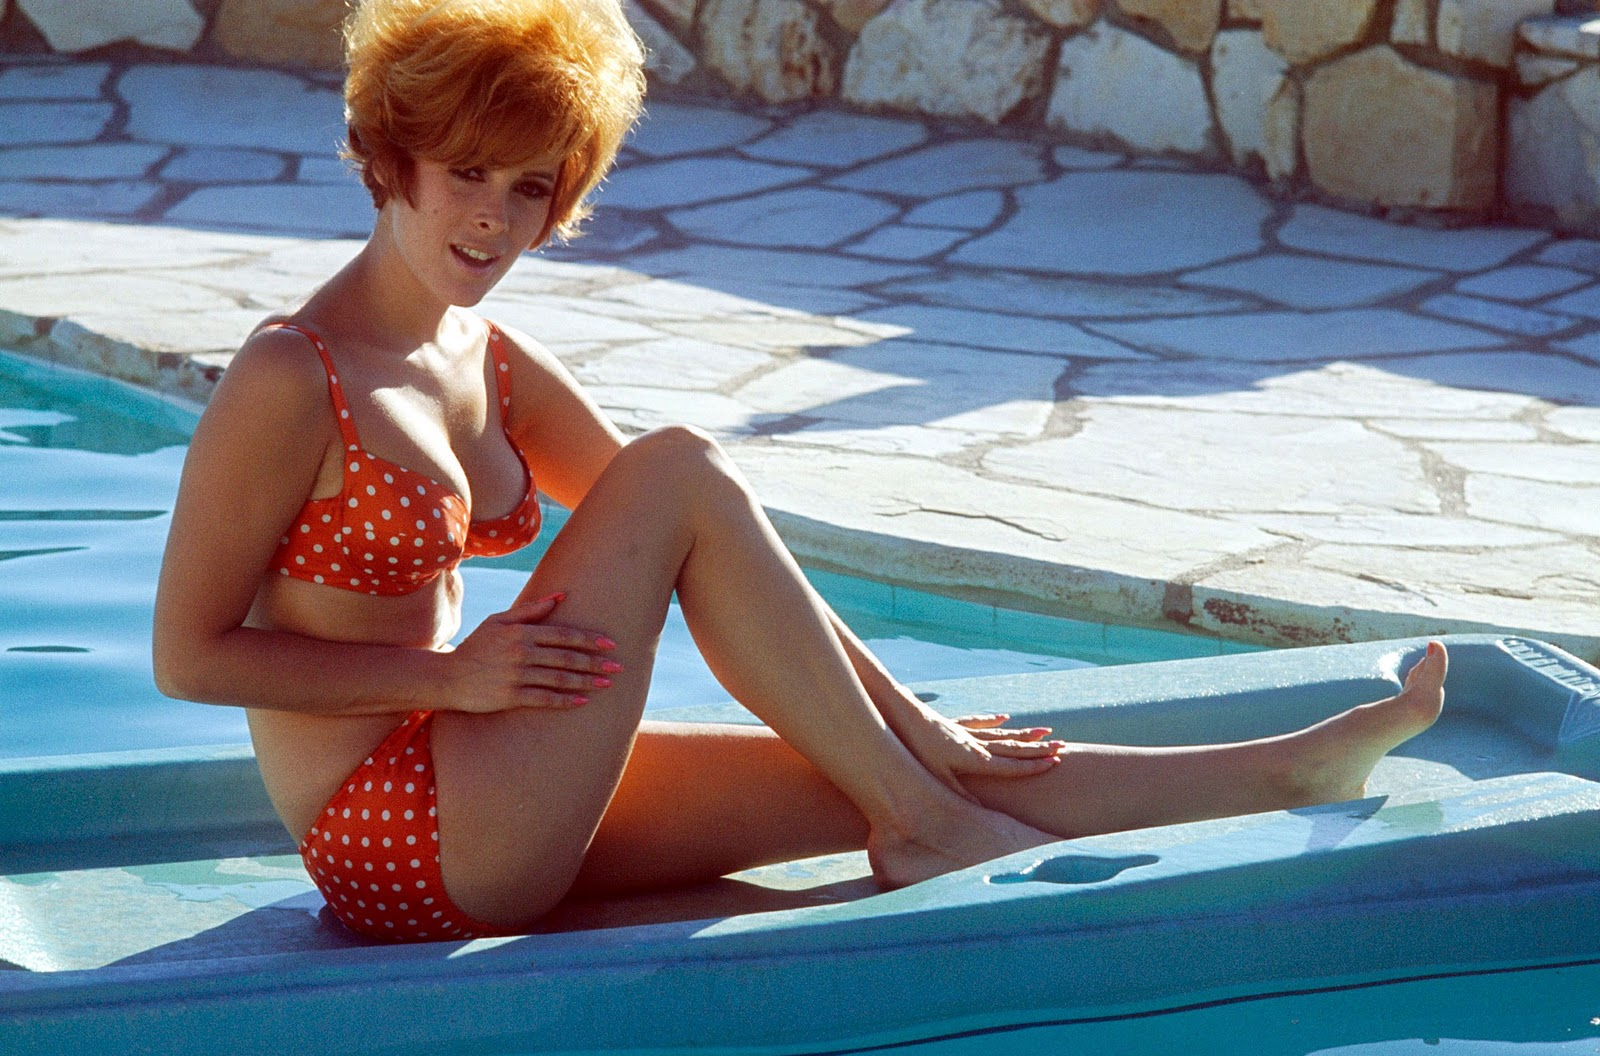 Jill St John Feet http://david-paris.blogspot.com/2011_11_01_archive.html